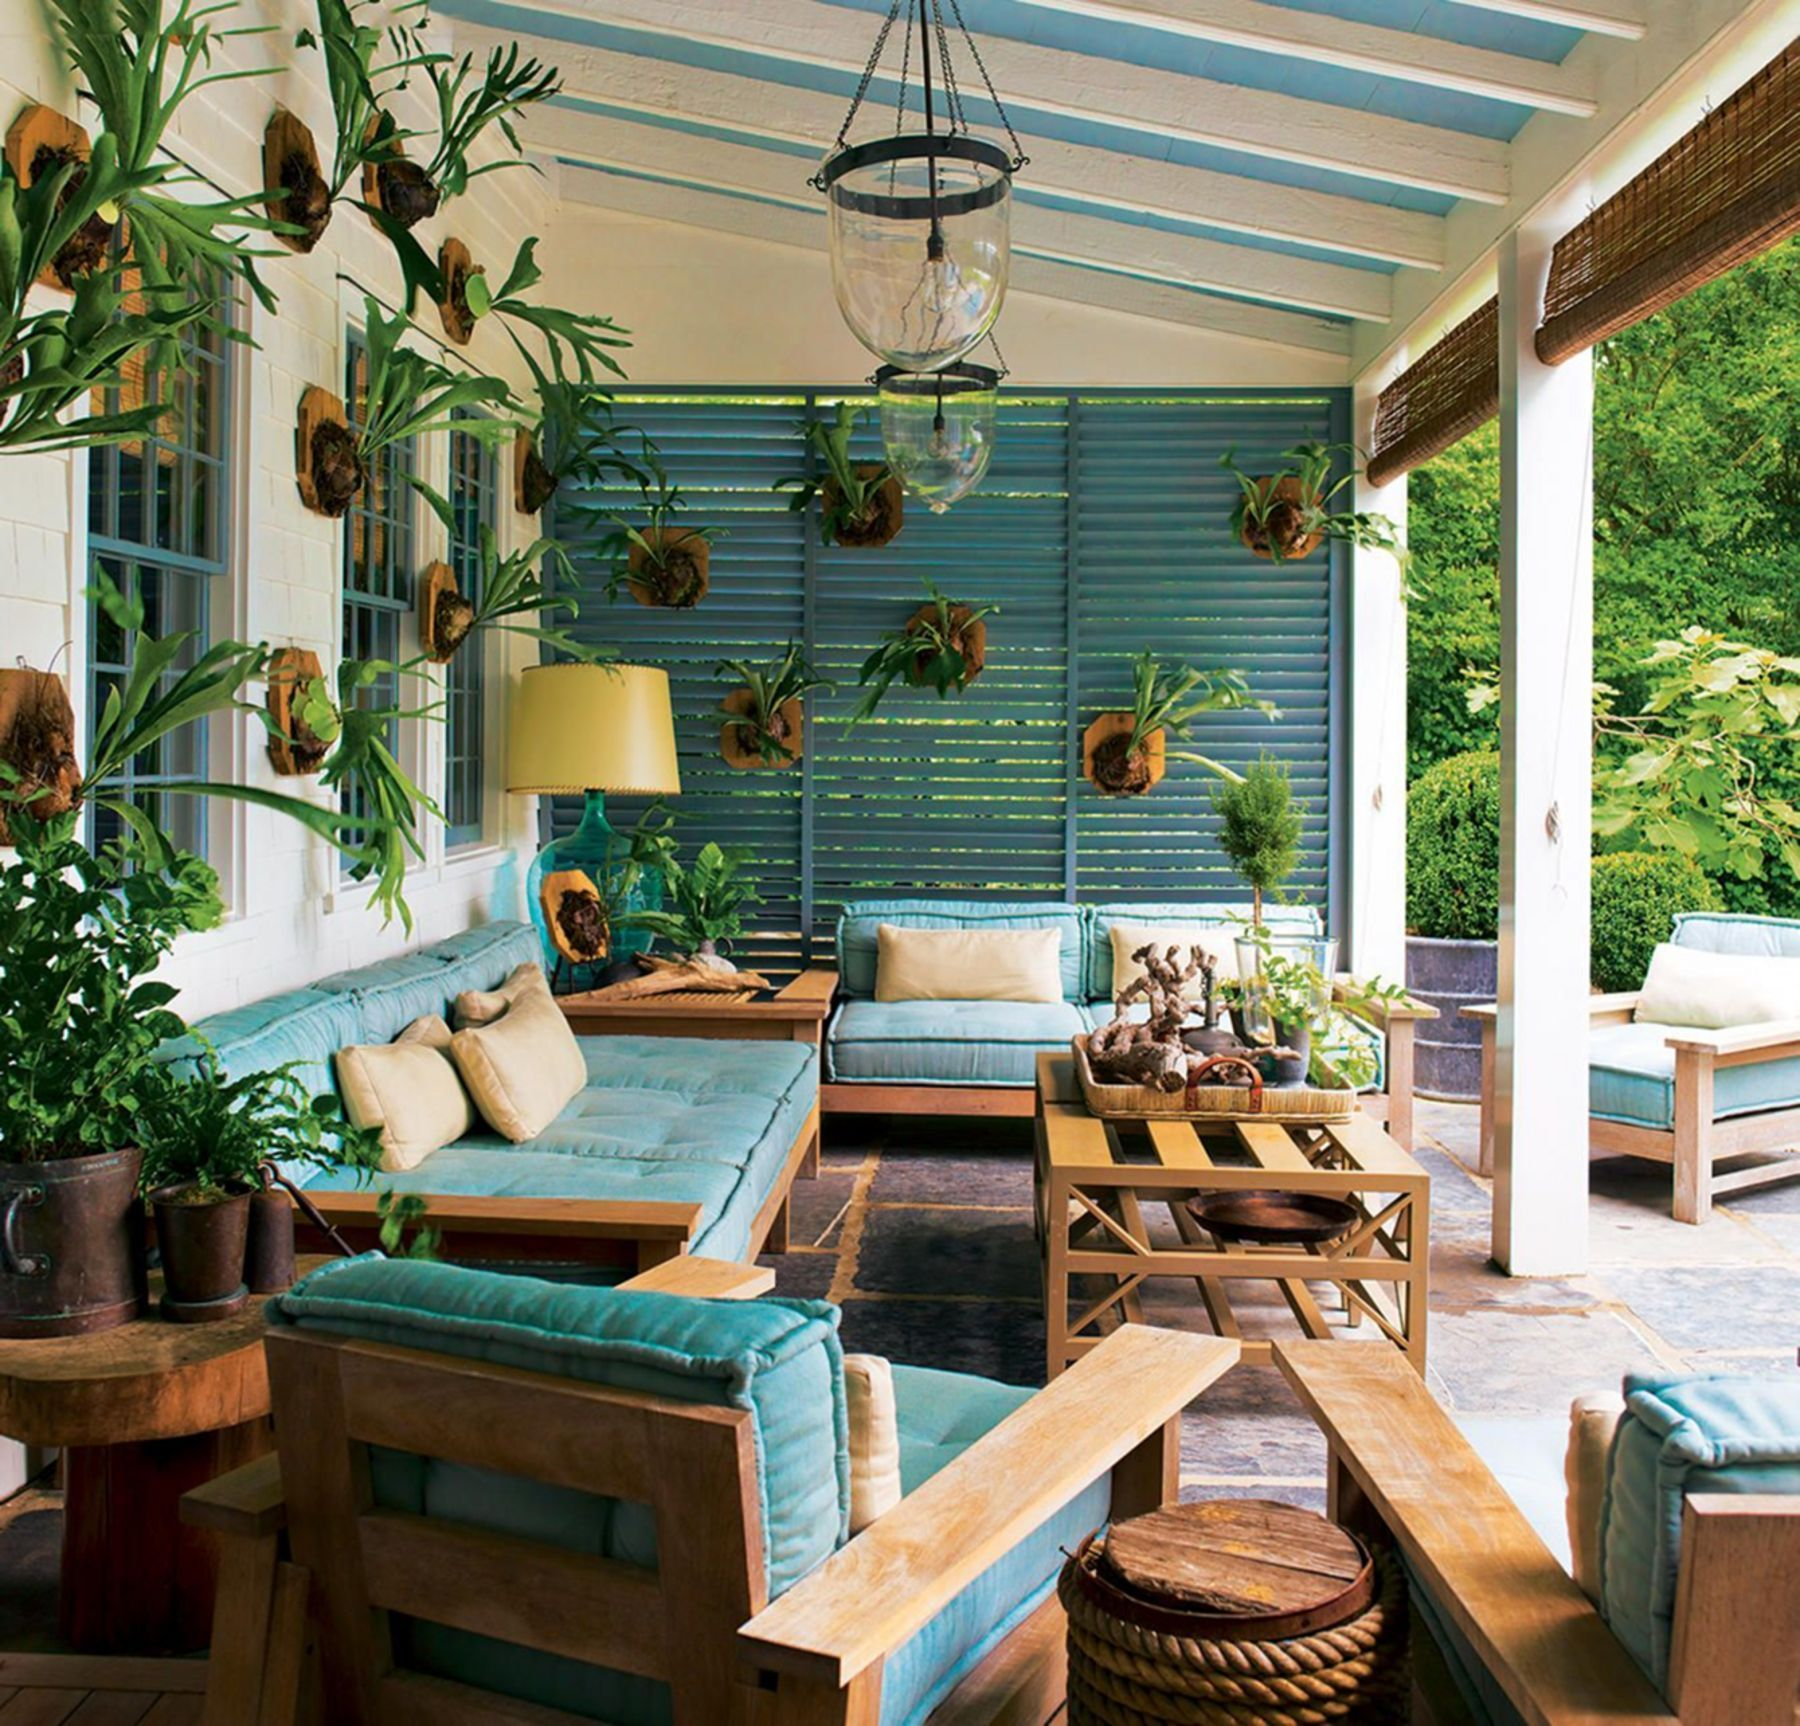 Pin By Prontoyoung On Furniture Outdoor Outdoor Living Room Outdoor Living Rooms Quality Living Room Furniture #outdoor #living #room #designs